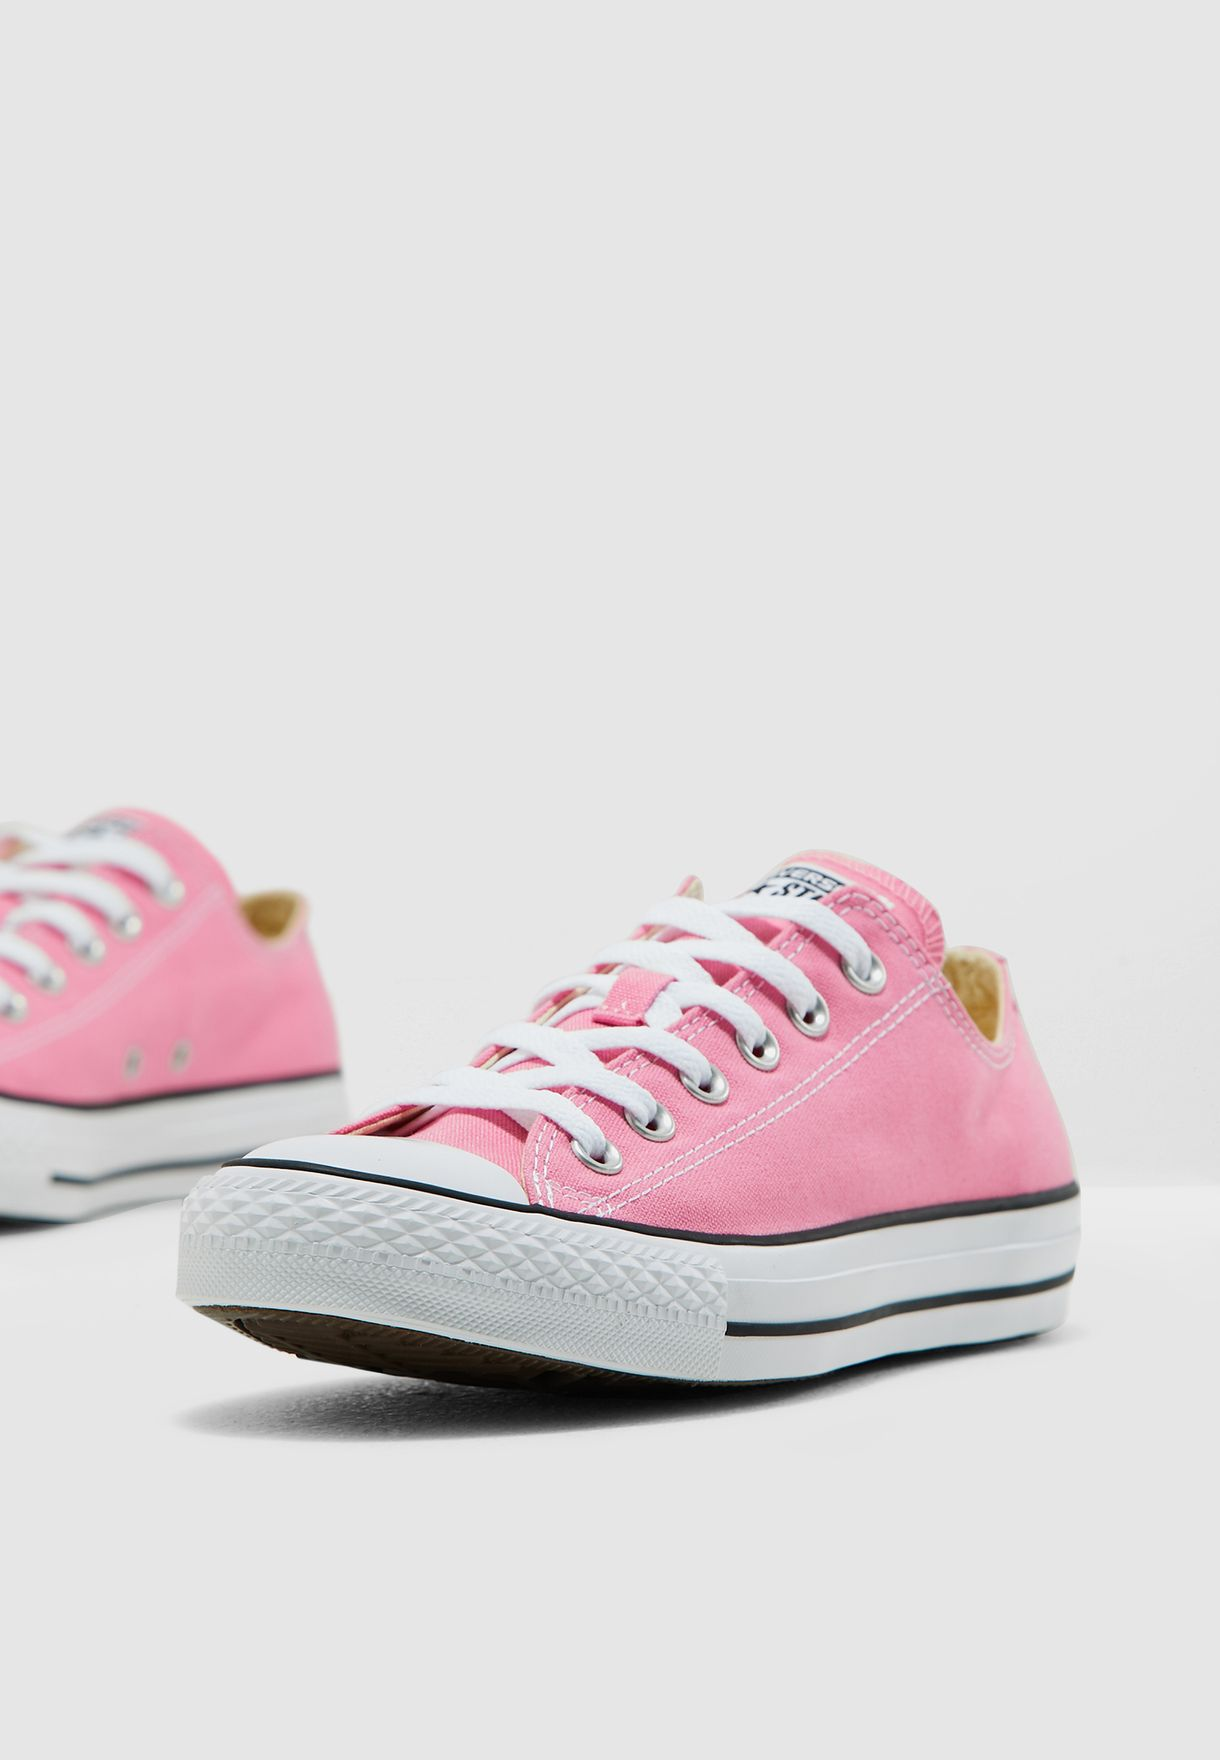 c3bbb9d5b795e2 Shop Converse pink Chuck Taylor All Star M9007-650 for Women in UAE ...